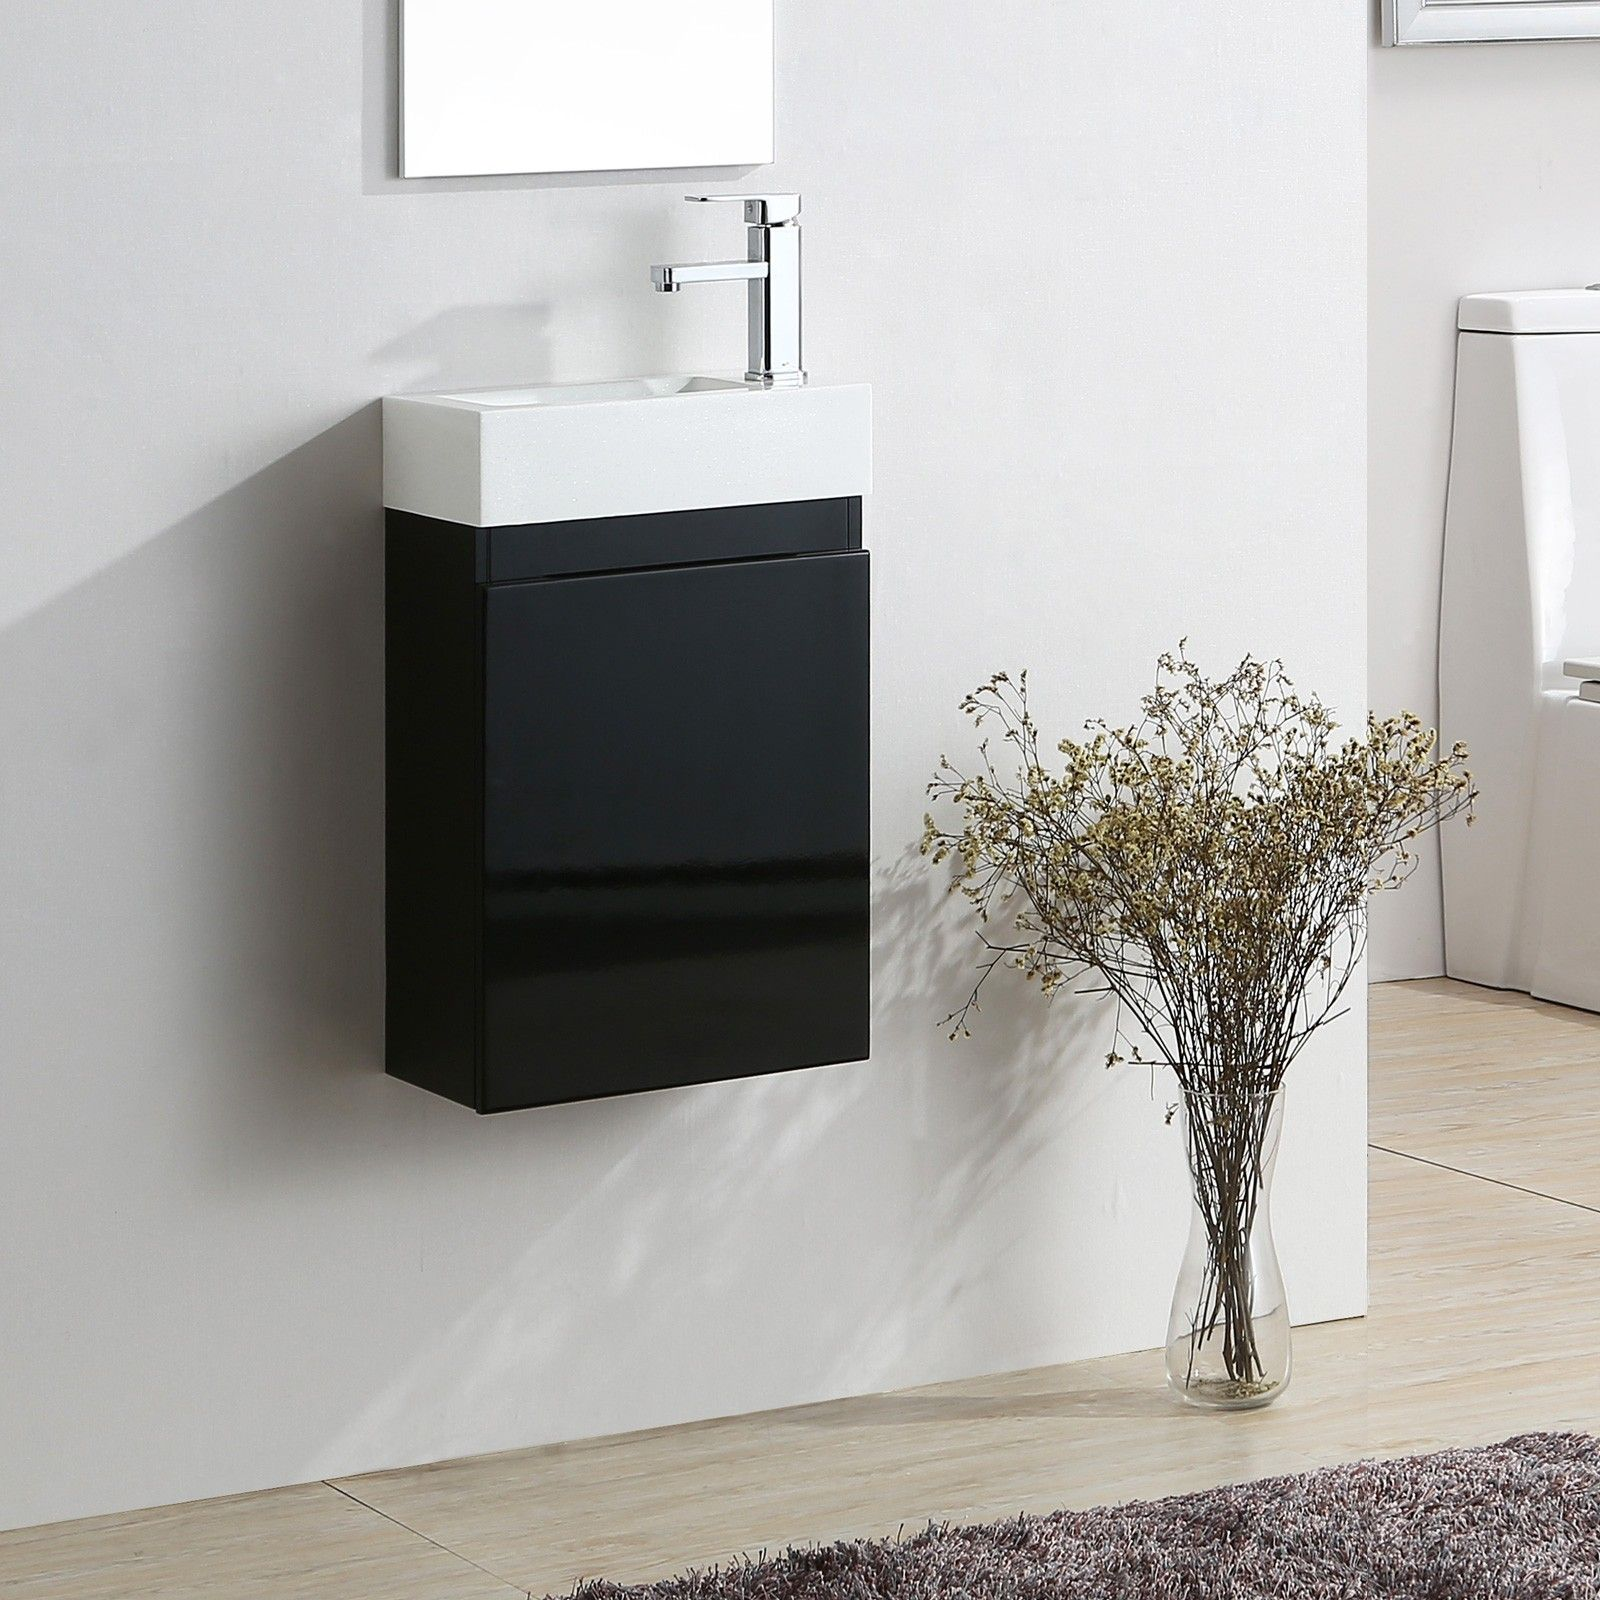 Bathroom Cabinets 400mm Wide elsa 400mm wall hung black gloss vanity unit white diamond